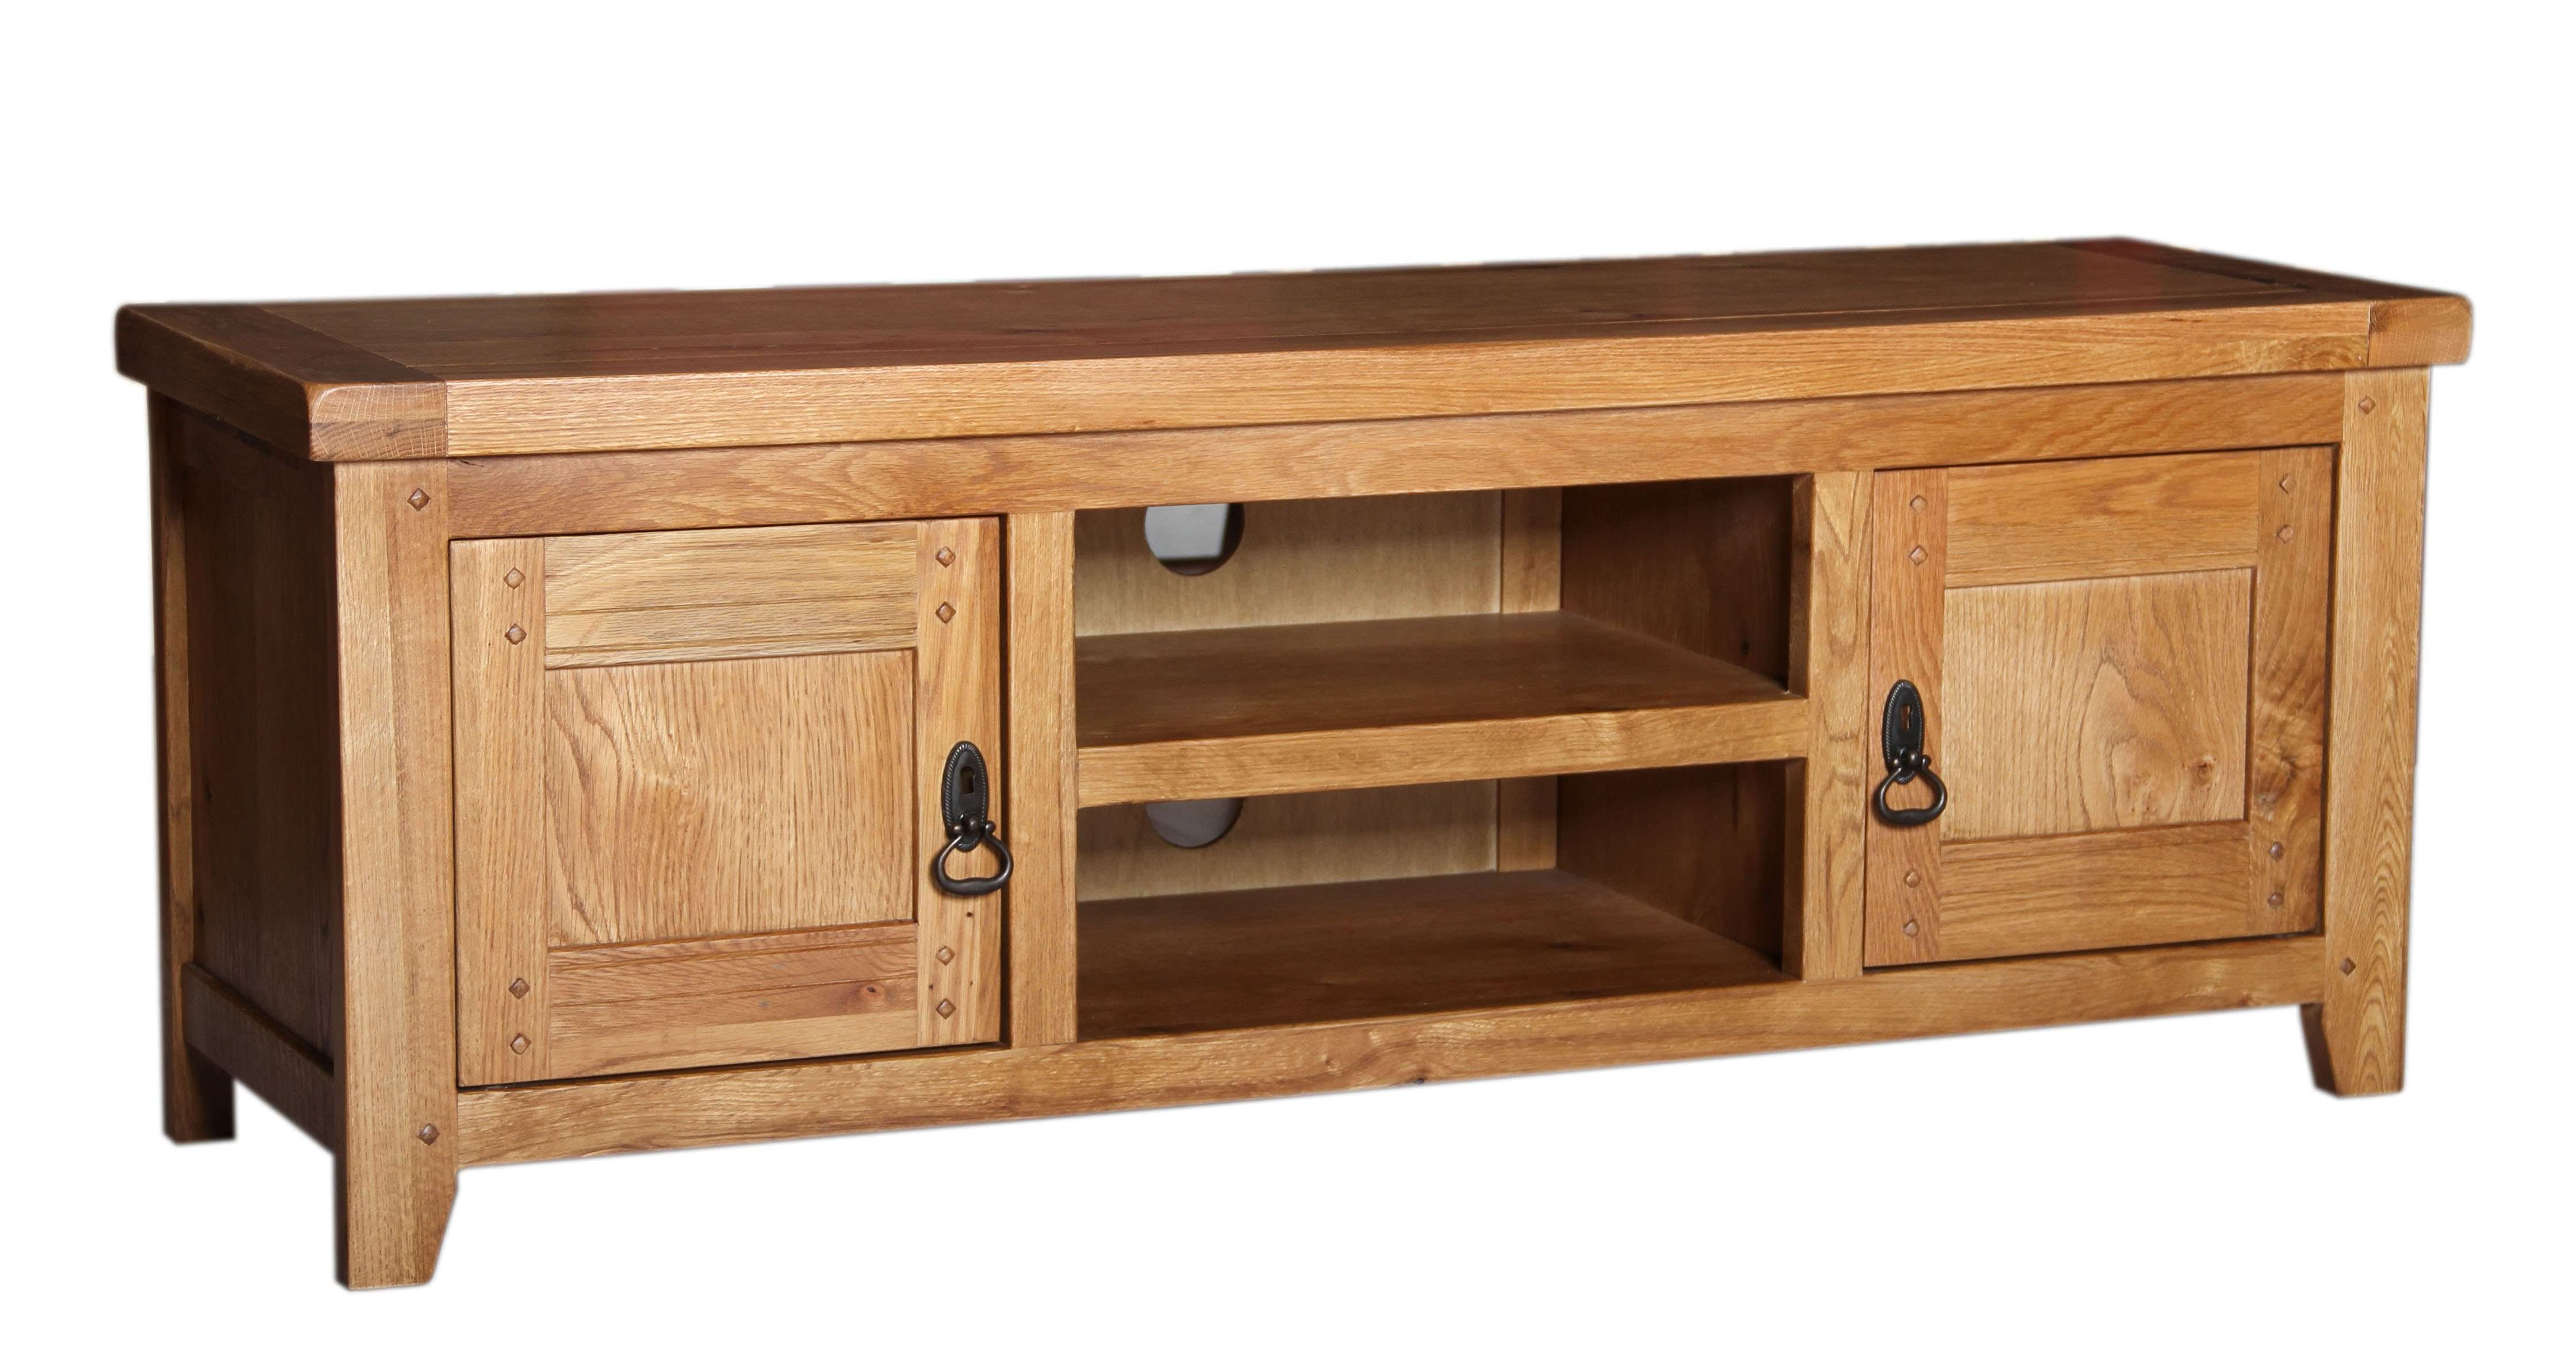 Sparkling Rustic Oak Low Tv Cabinet For Tv Cabinet Rustic Images Throughout Low Oak Tv Stands (View 5 of 20)